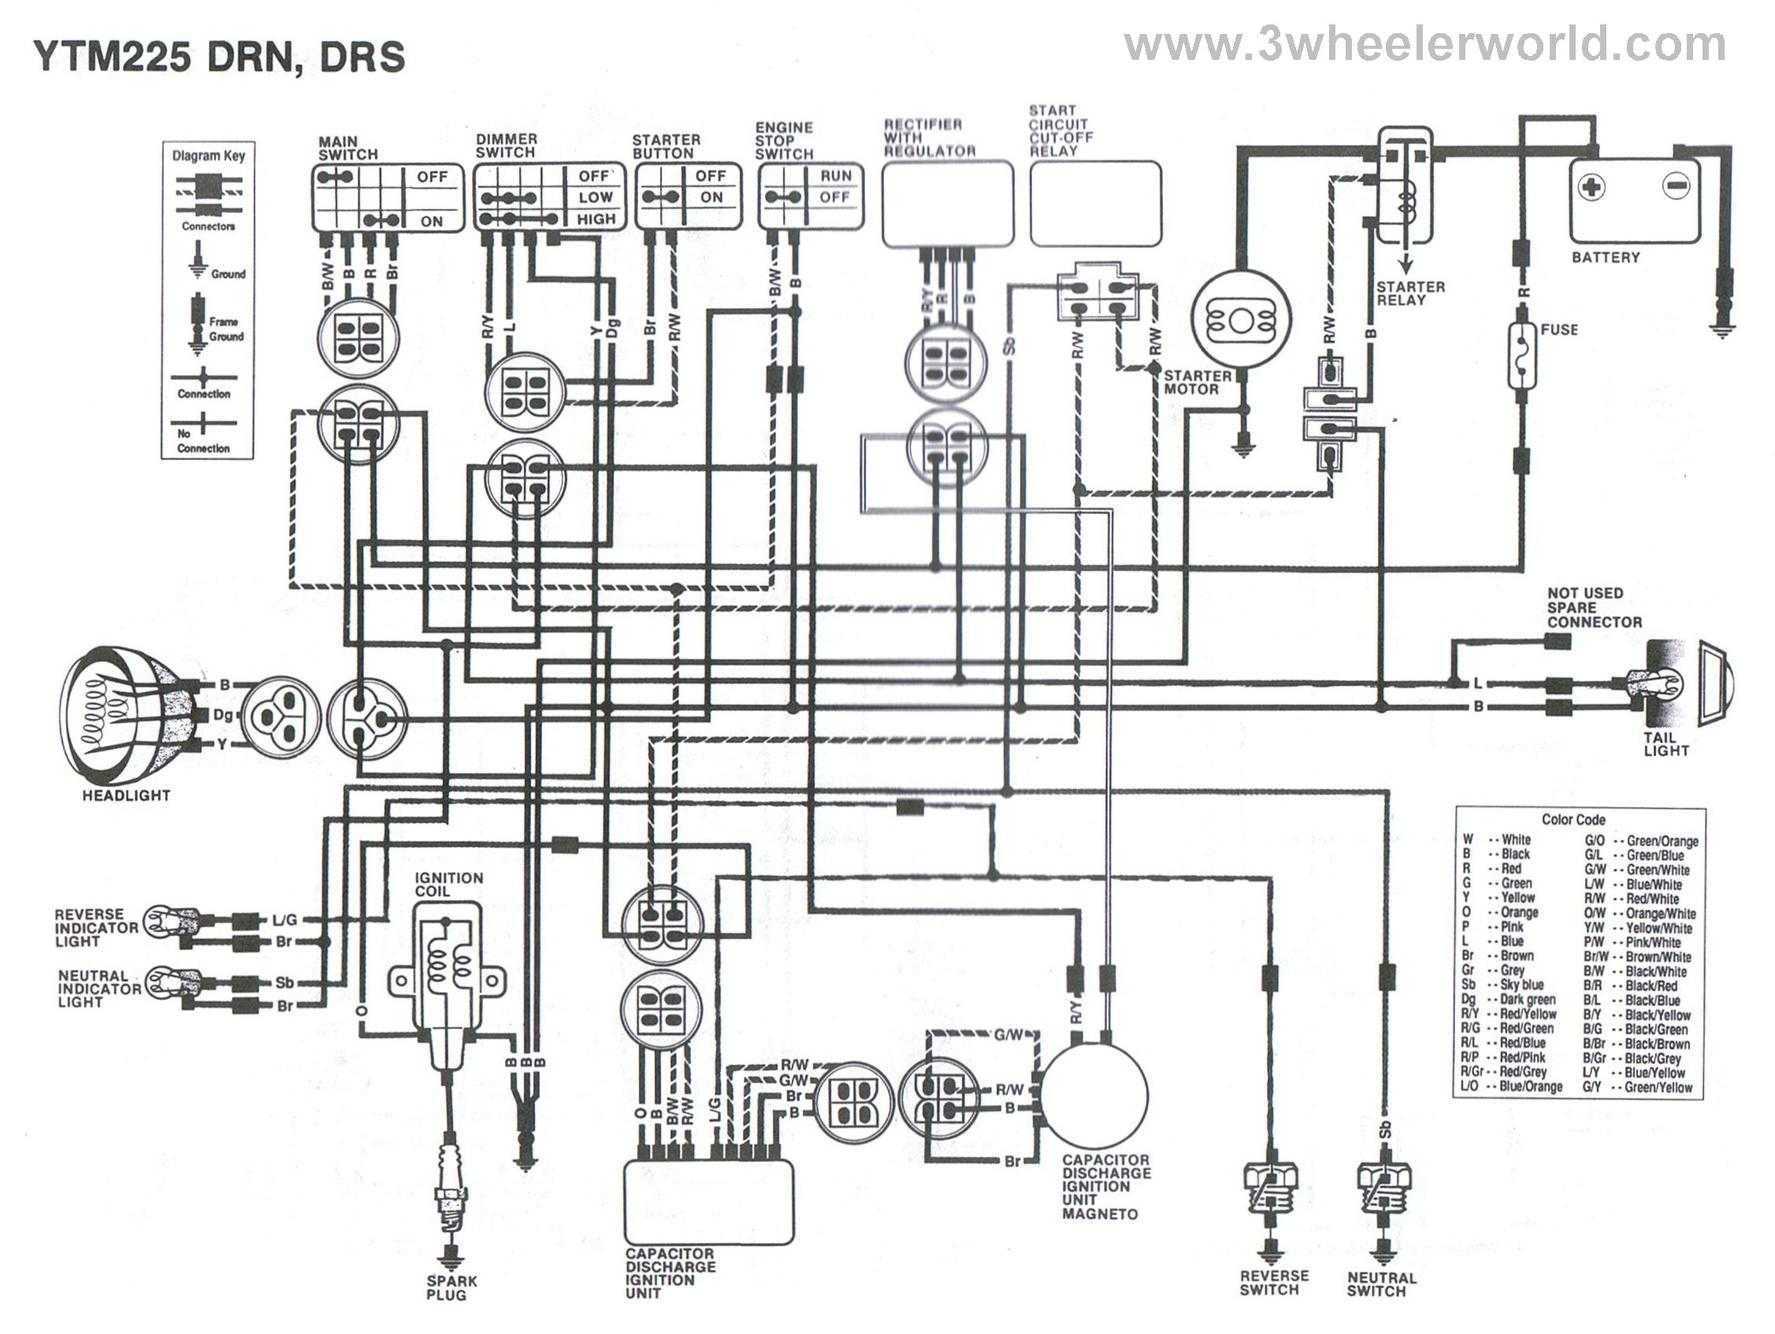 Wiring Diagram Yamaha Timberwolf 250